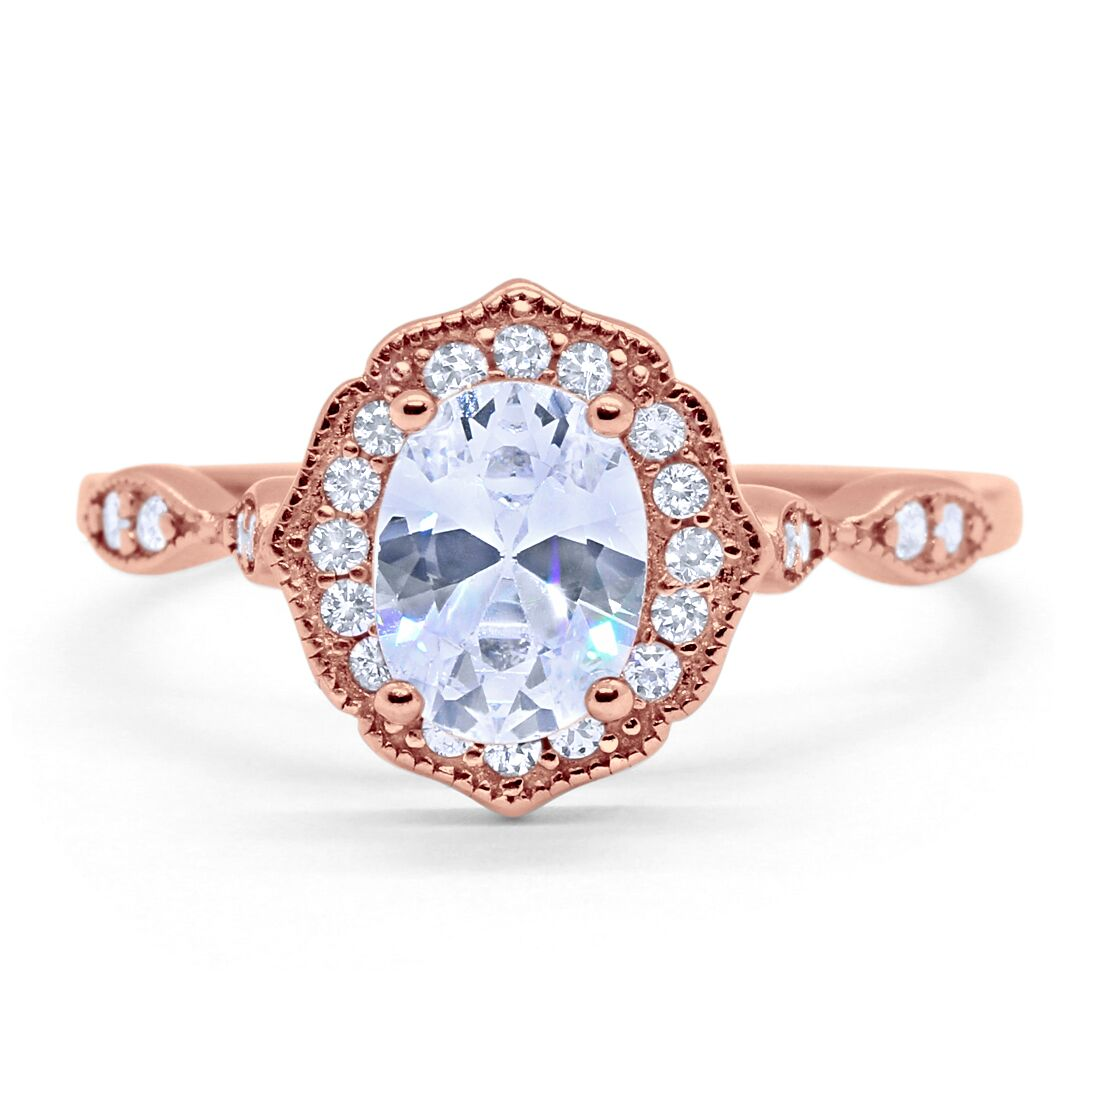 Art-Deco-Antique-Style-Wedding-Ring-Oval-CZ-925-Sterling-Silver-Choose-Color